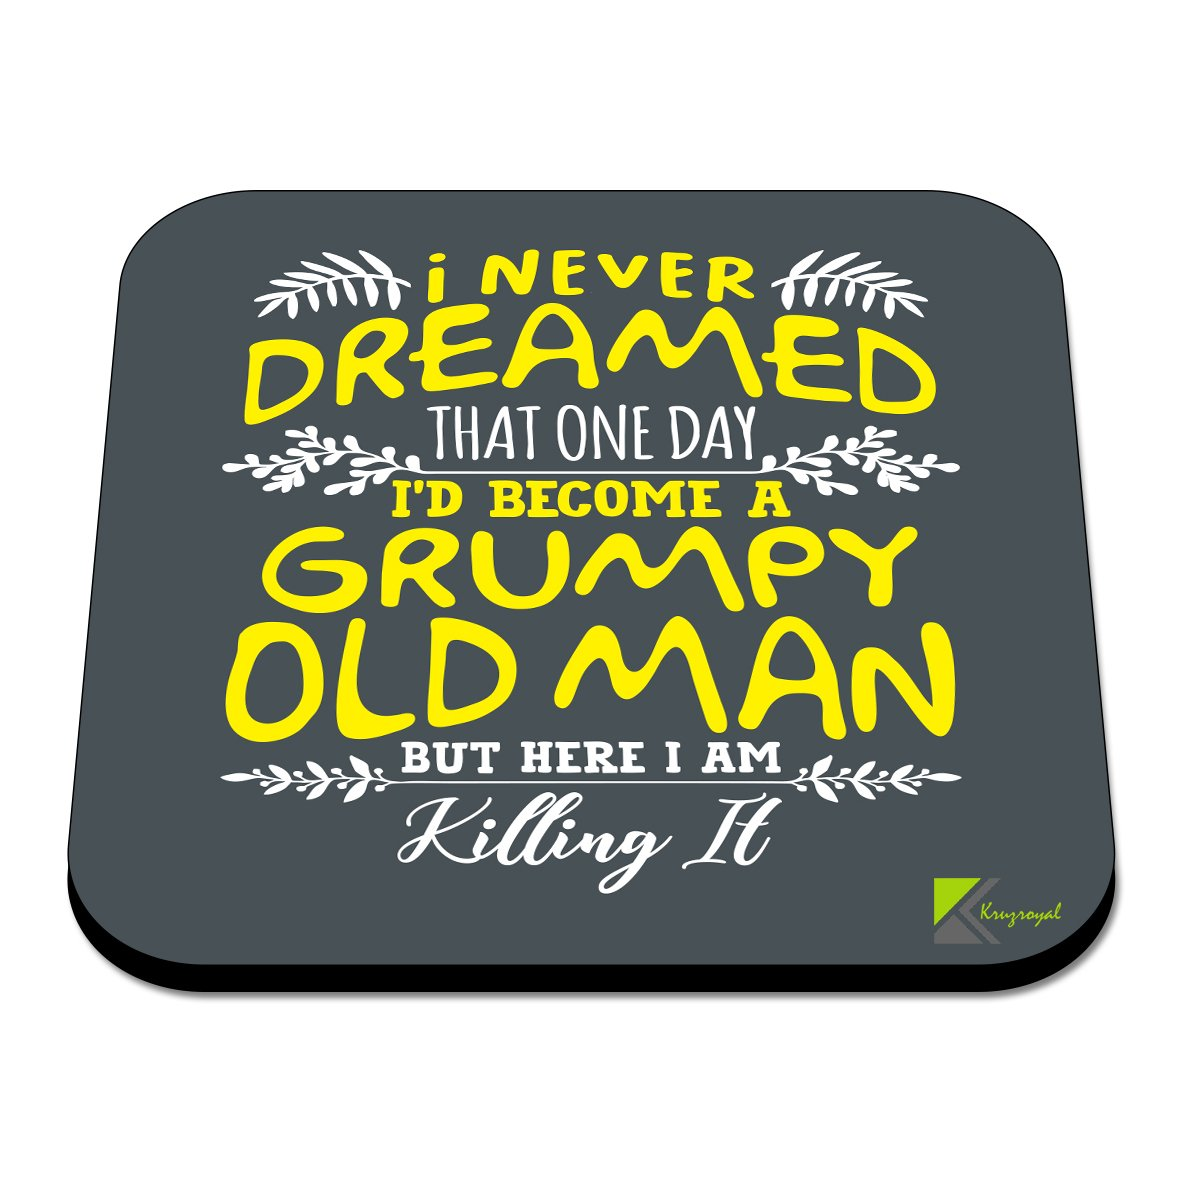 Novelty Funny Coffee Tea Drink Gift Glossy MDF Wooden Coaster CS560 Im Sorry did i roll My Eyes Out Loud